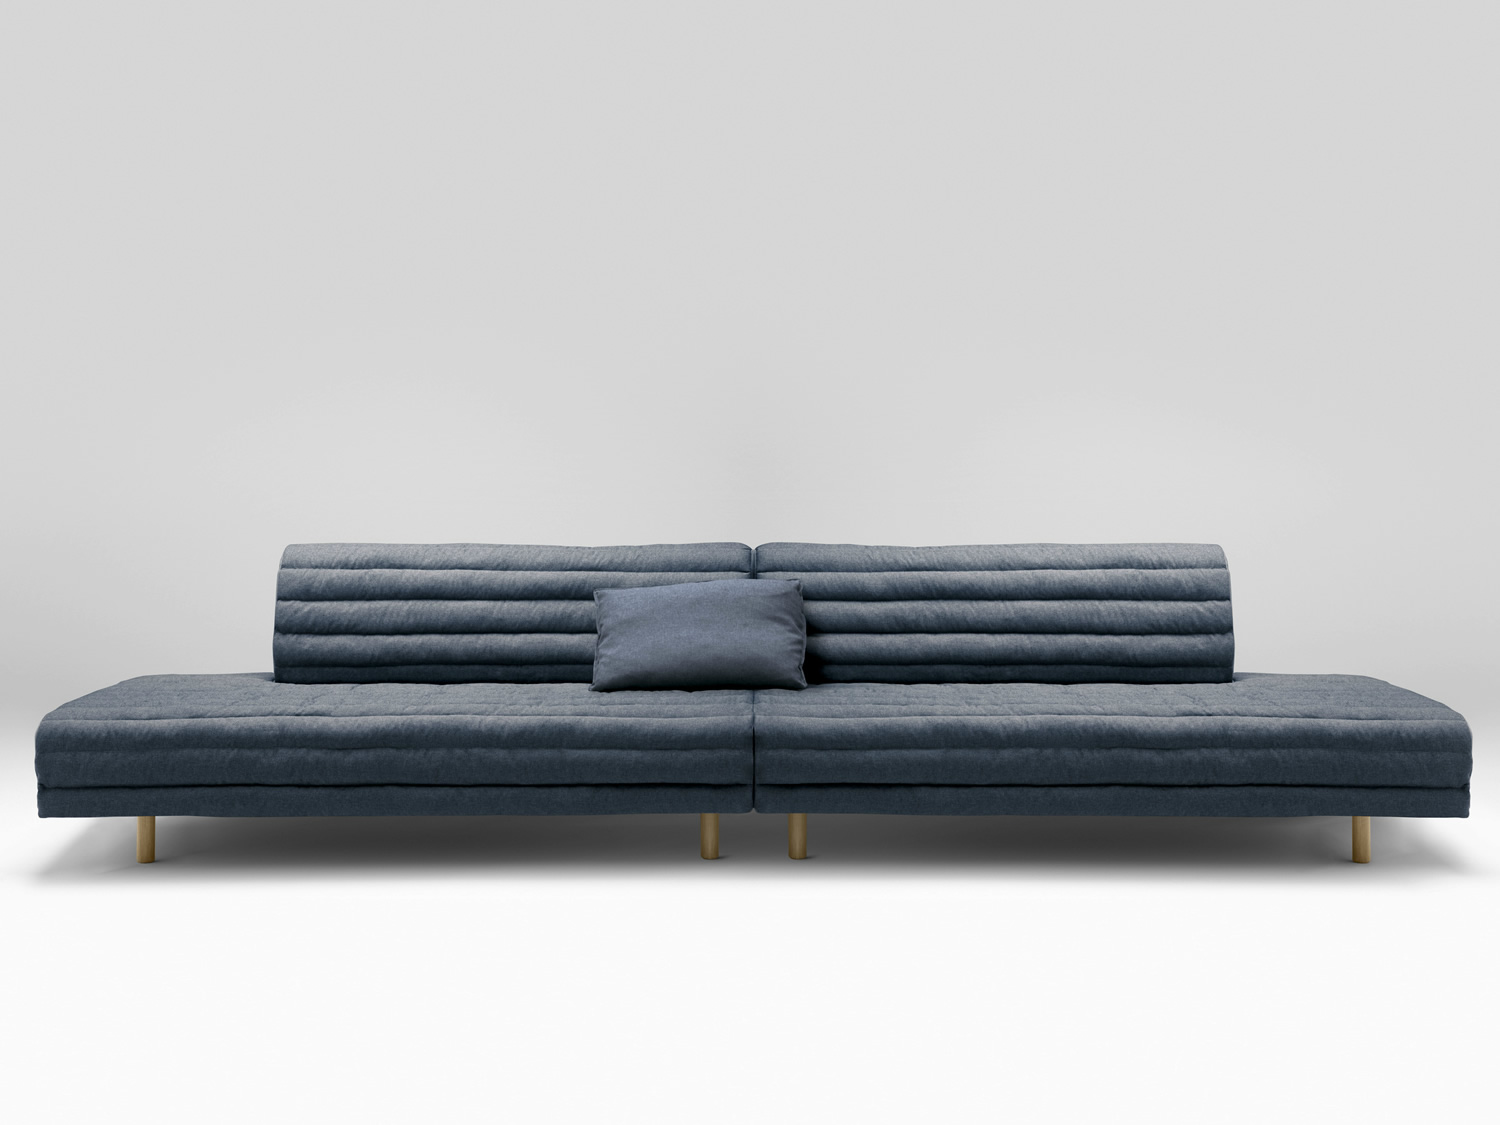 KOUET Sofa Collection by Bosc